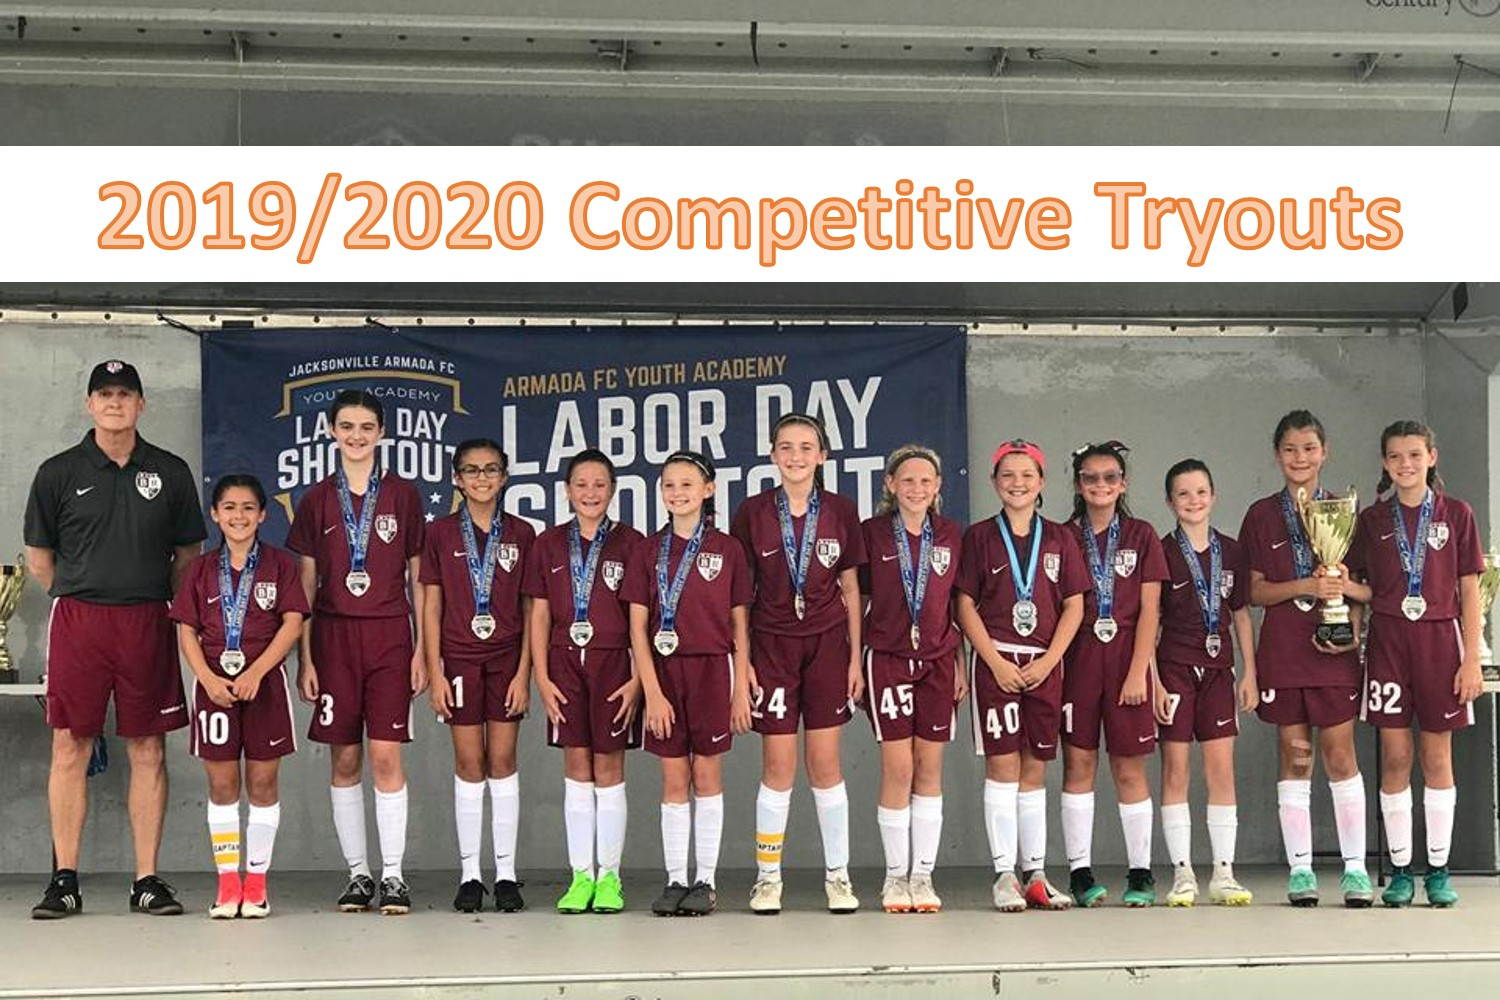 2019/2020 Competitive Soccer Tryouts Start Monday May 6